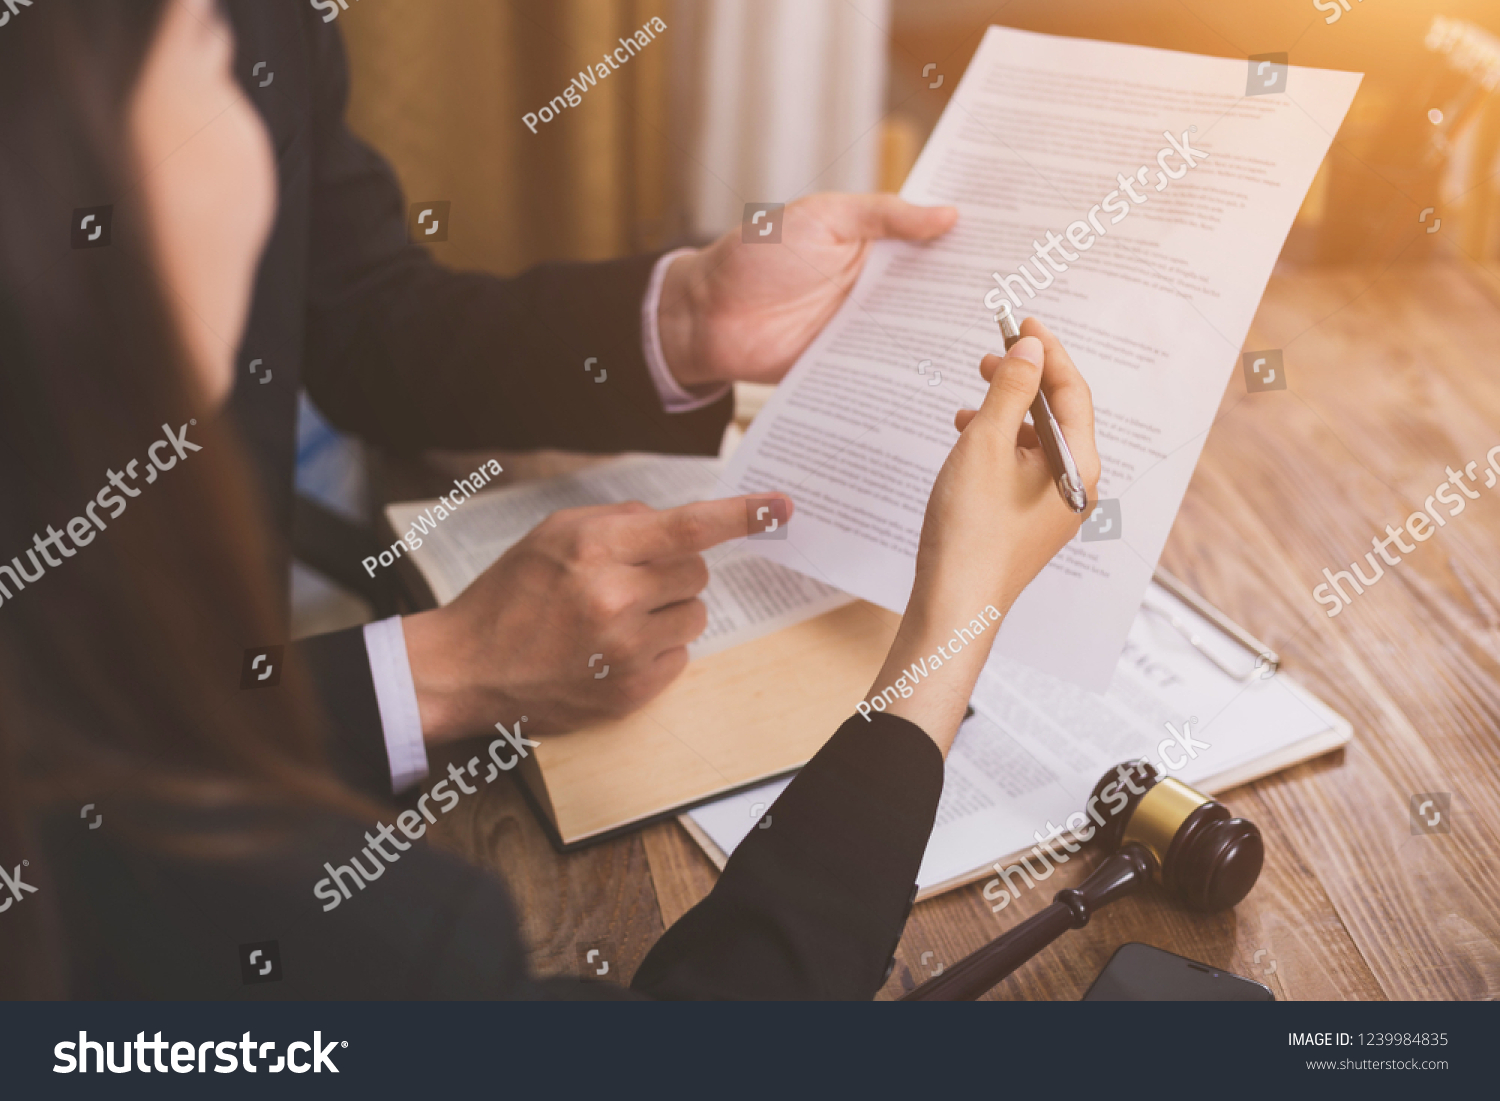 The hard work of an asian lawyer in a lawyer's office. Counseling and giving advice and prosecutions about the invasion of space between private and government officials to find a fair settlement. #1239984835